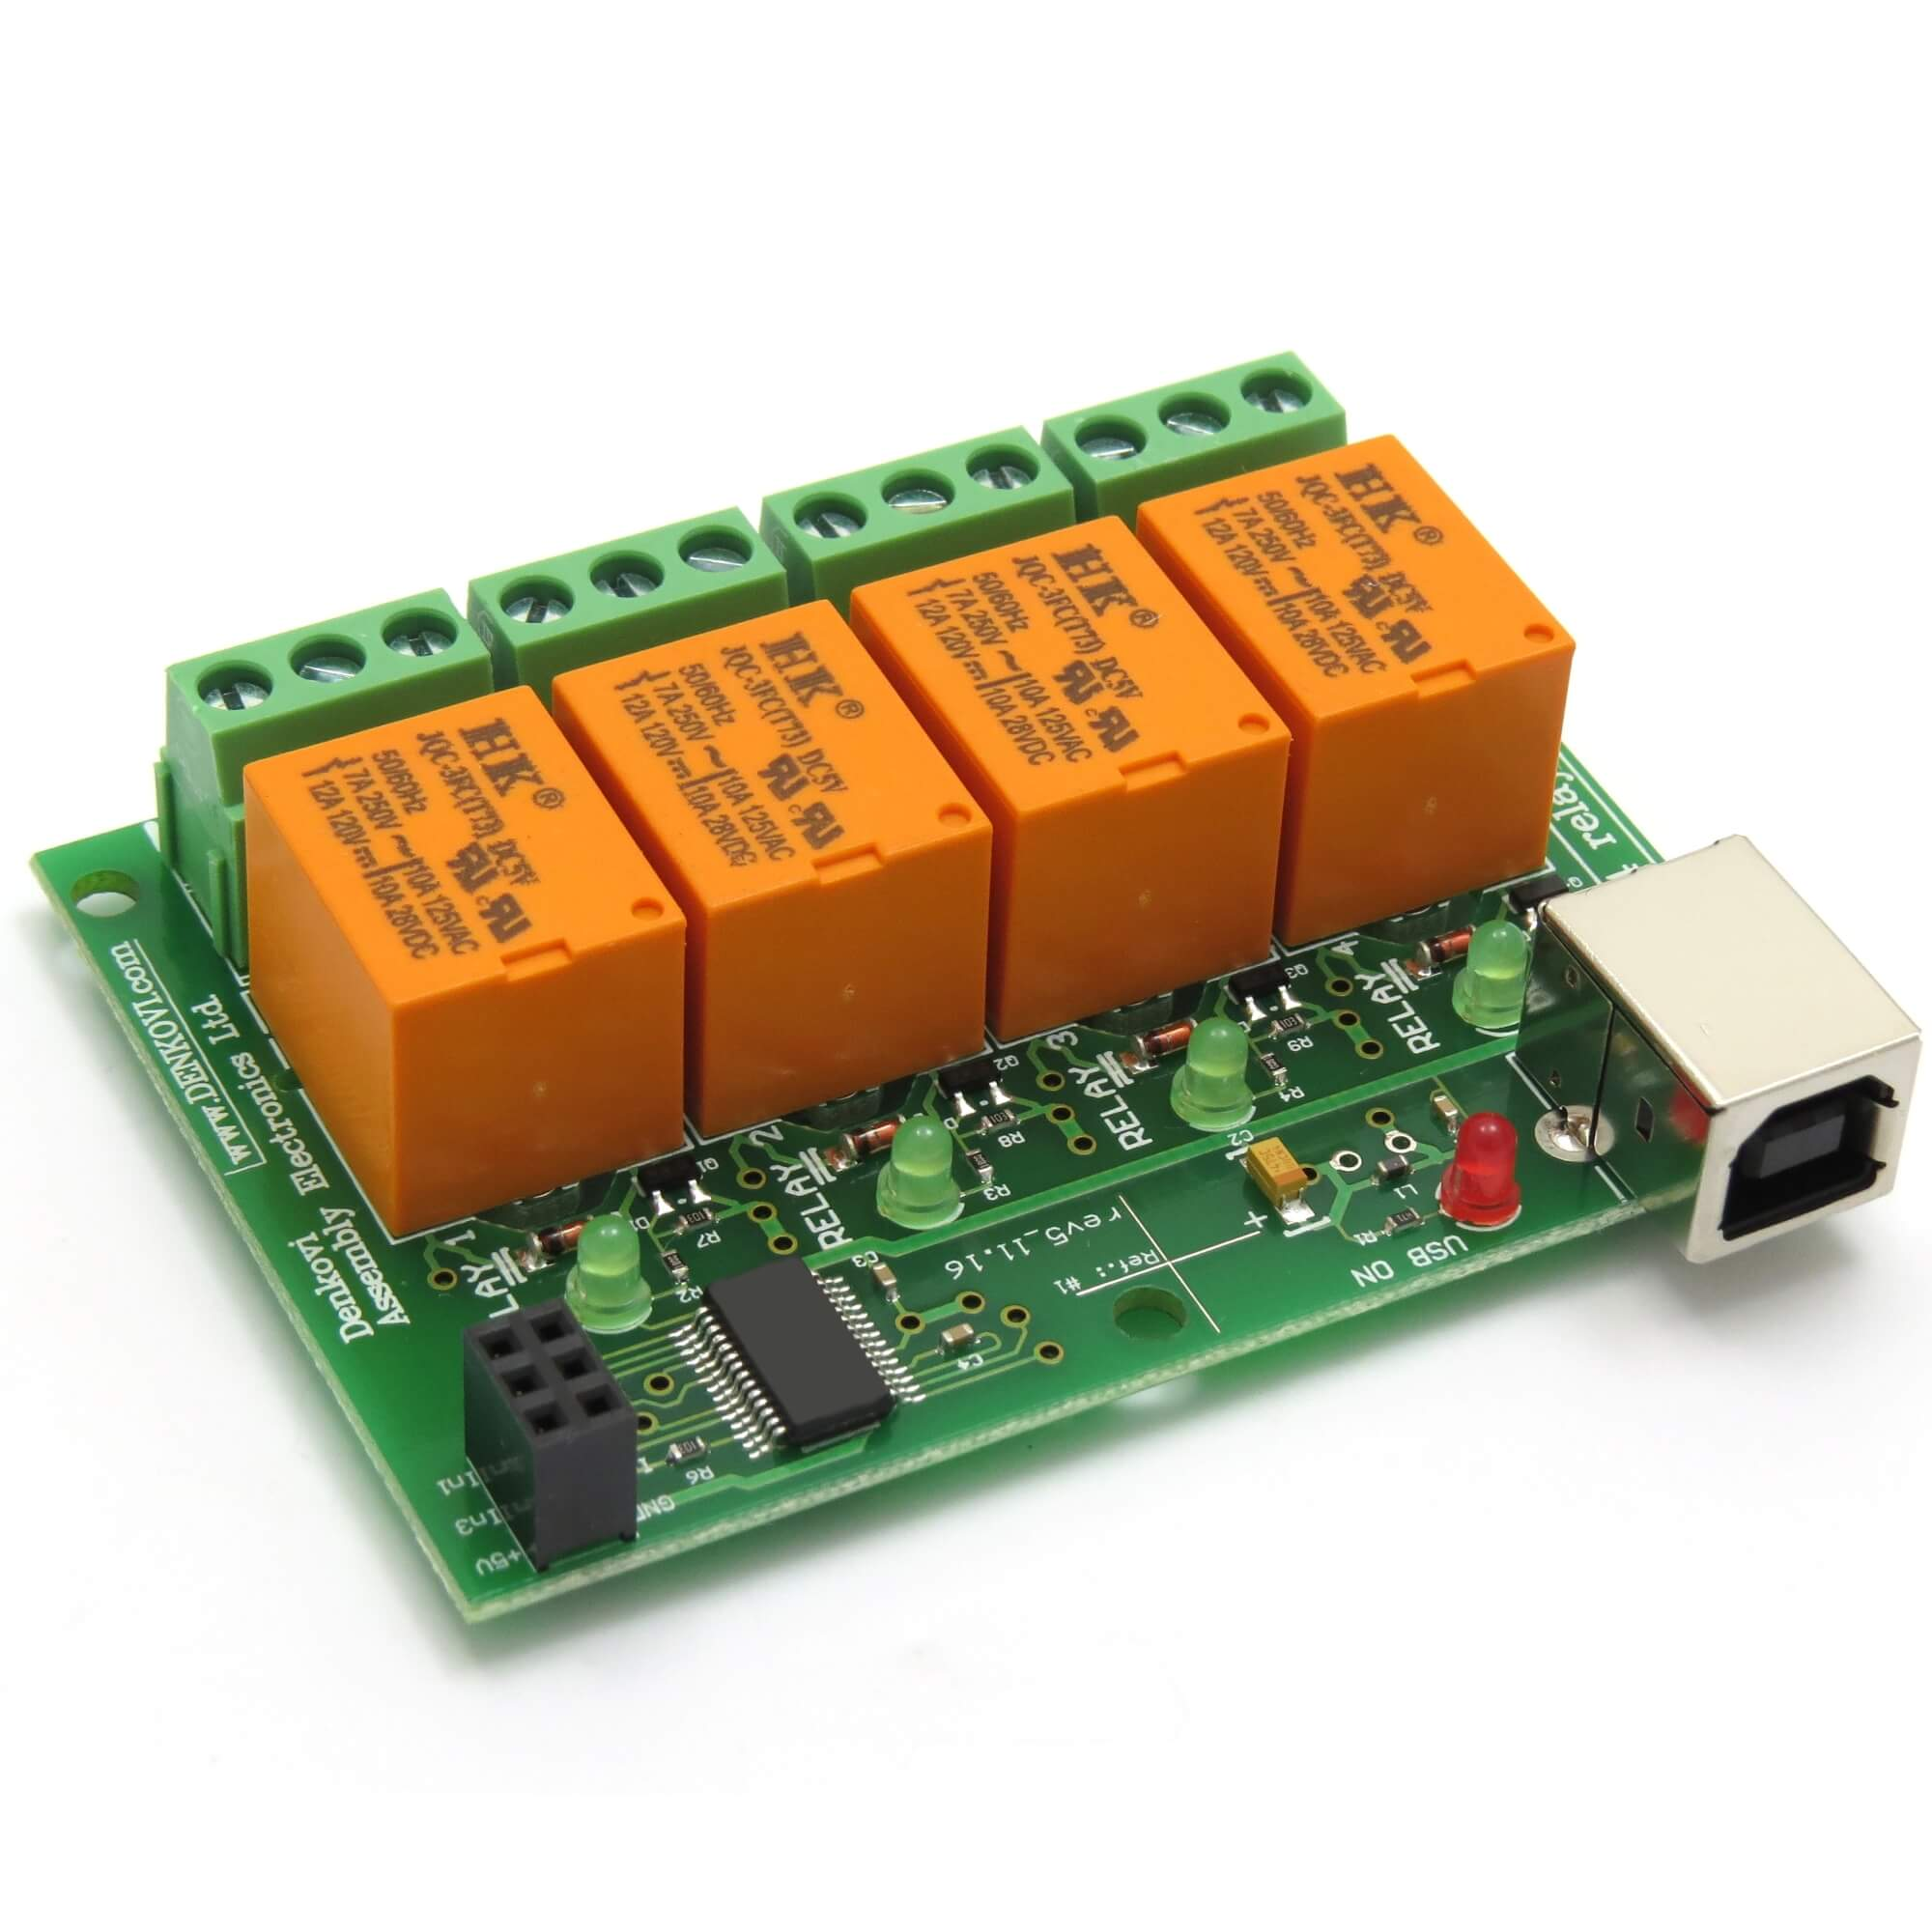 Details about USB Relay Board - Four(4) Channels, for Home Automation  JQC-3FC/T7 DC5V